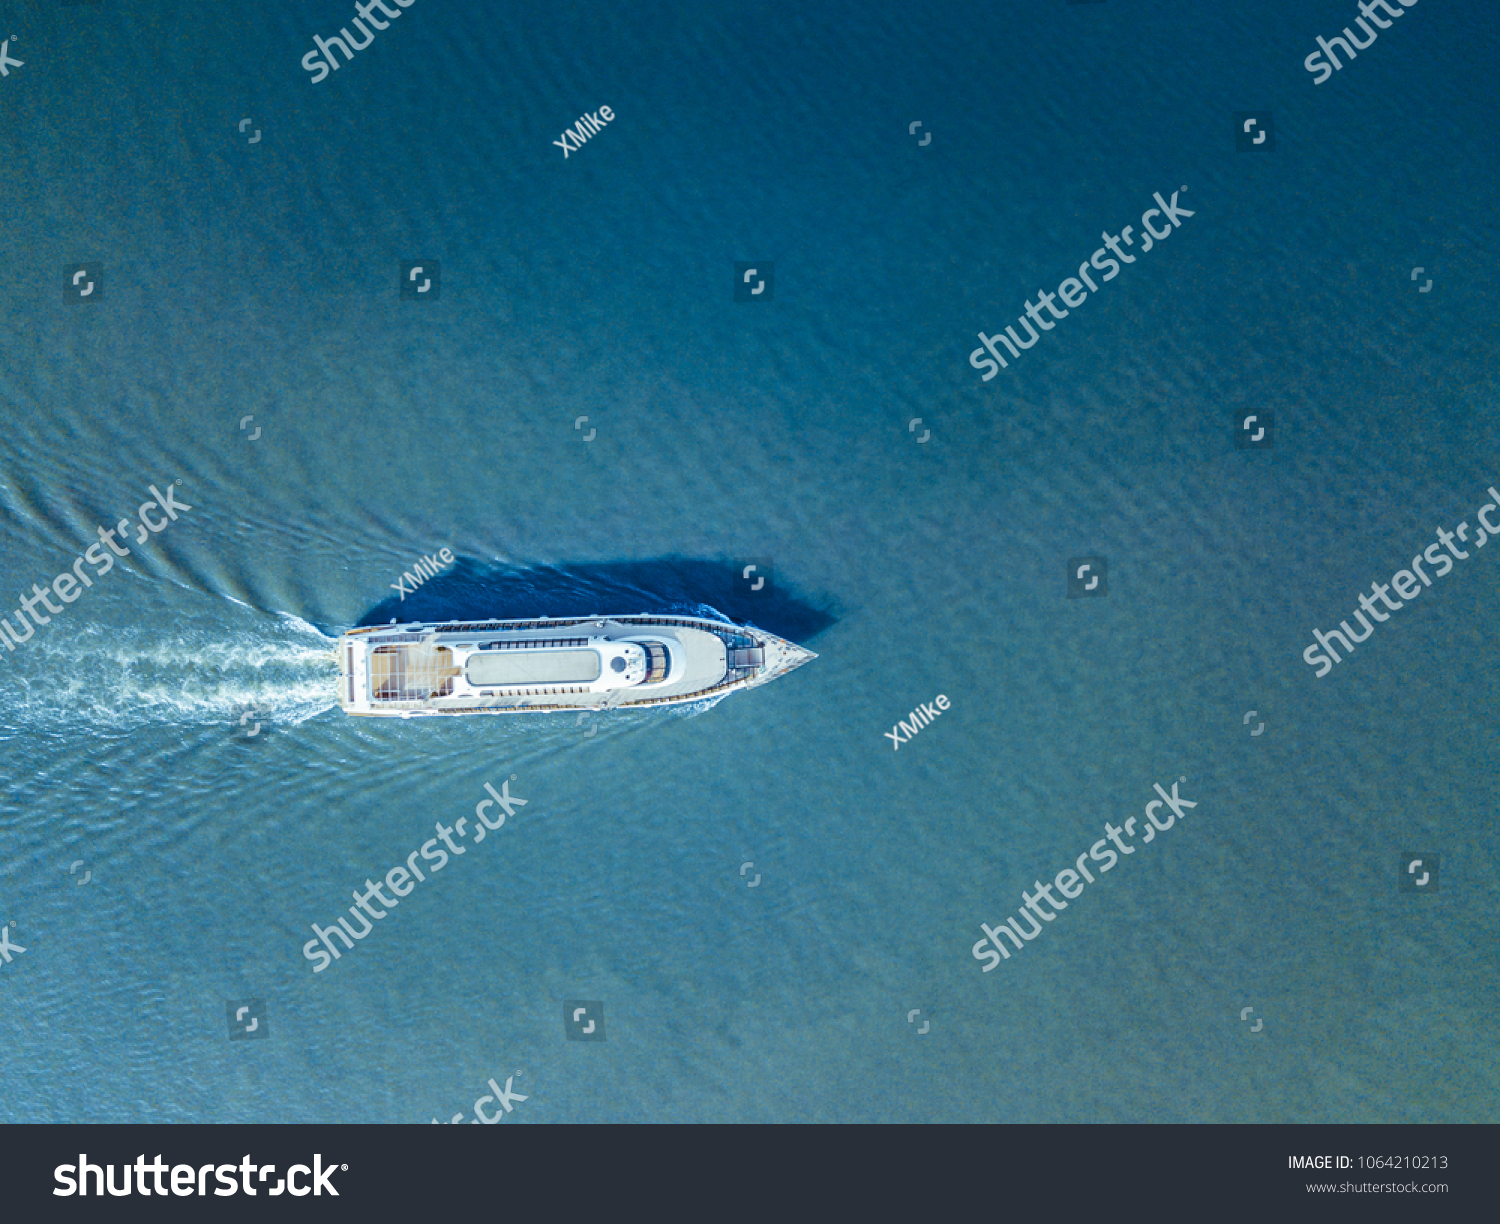 aerial ferry in the sea on a sunny day blue water isolated #1064210213